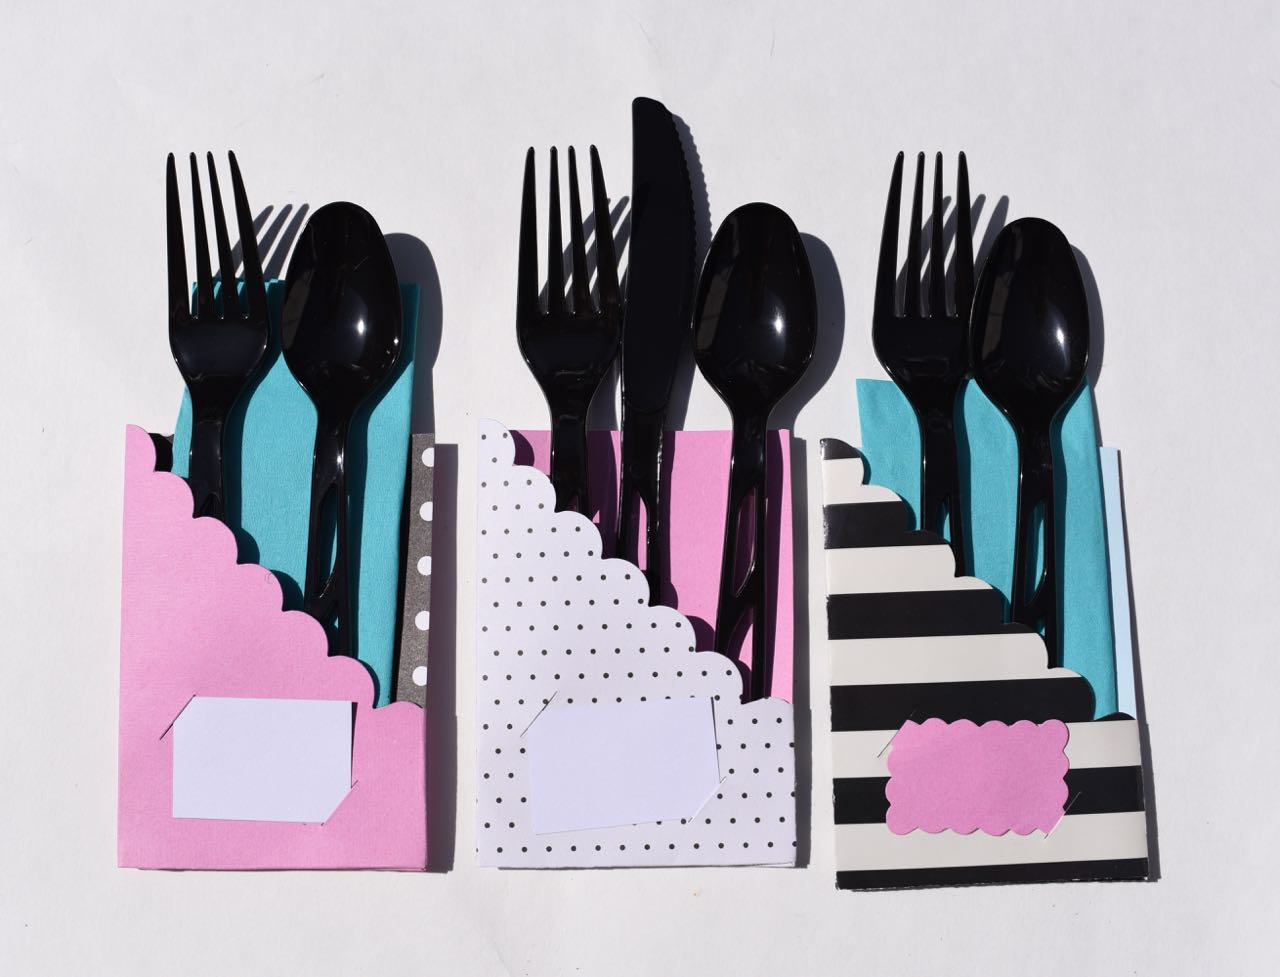 Paper utensil holders with Sizzix die